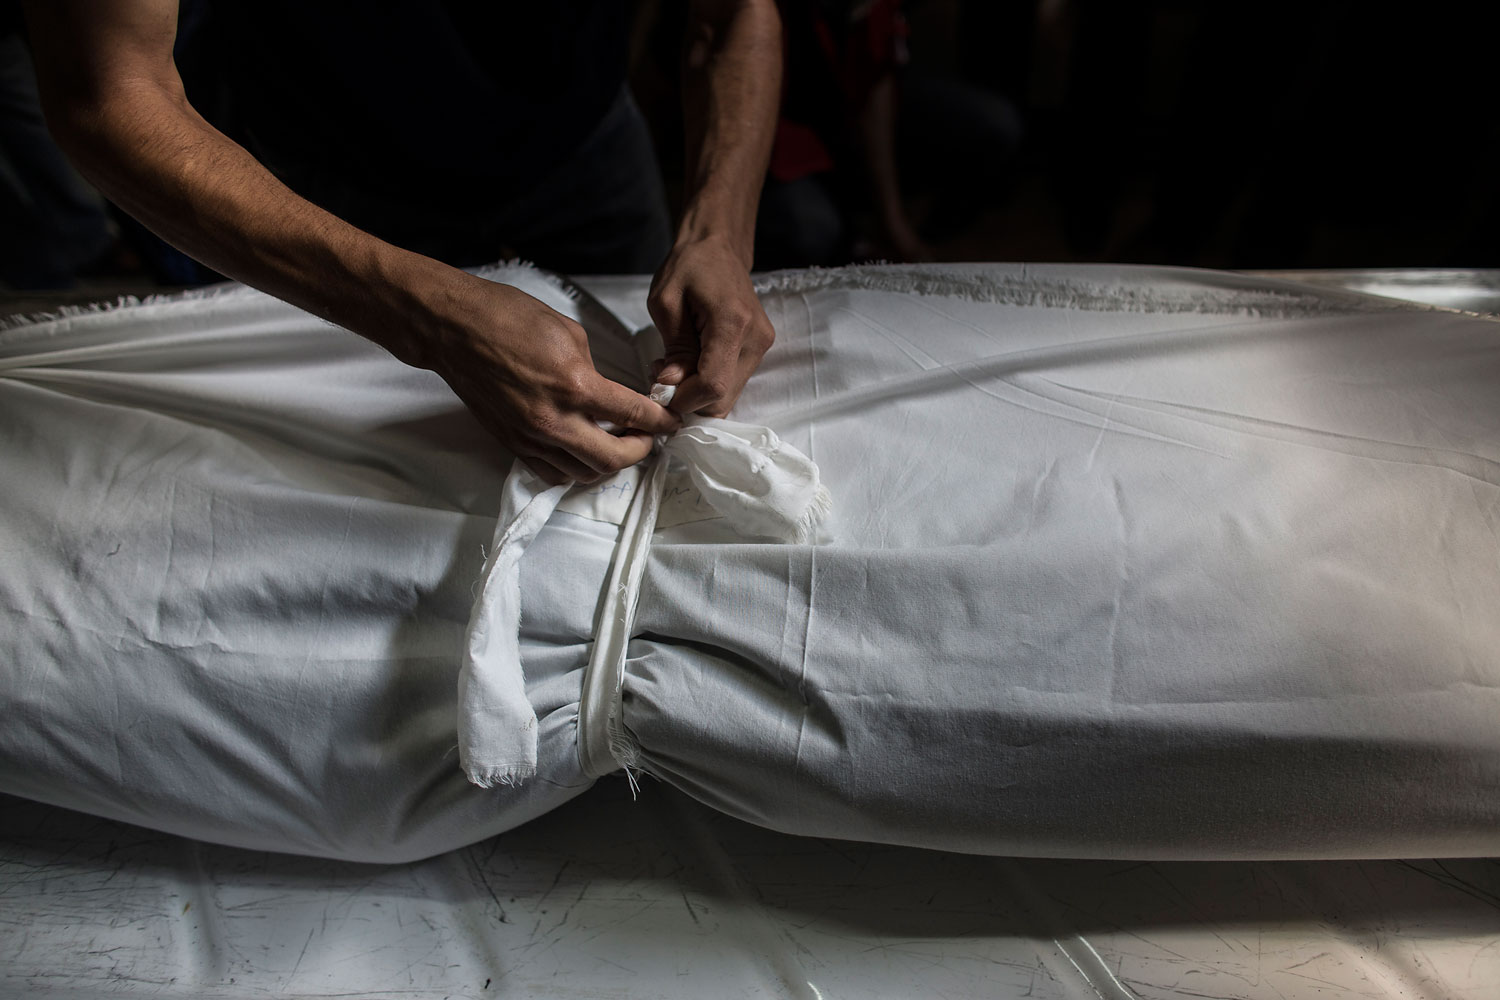 A Palestinian mortician ties a knot around the sheet covering the body of a dead Palestinian man in a morgue in Khan Younis, central Gaza City, July 18, 2014.